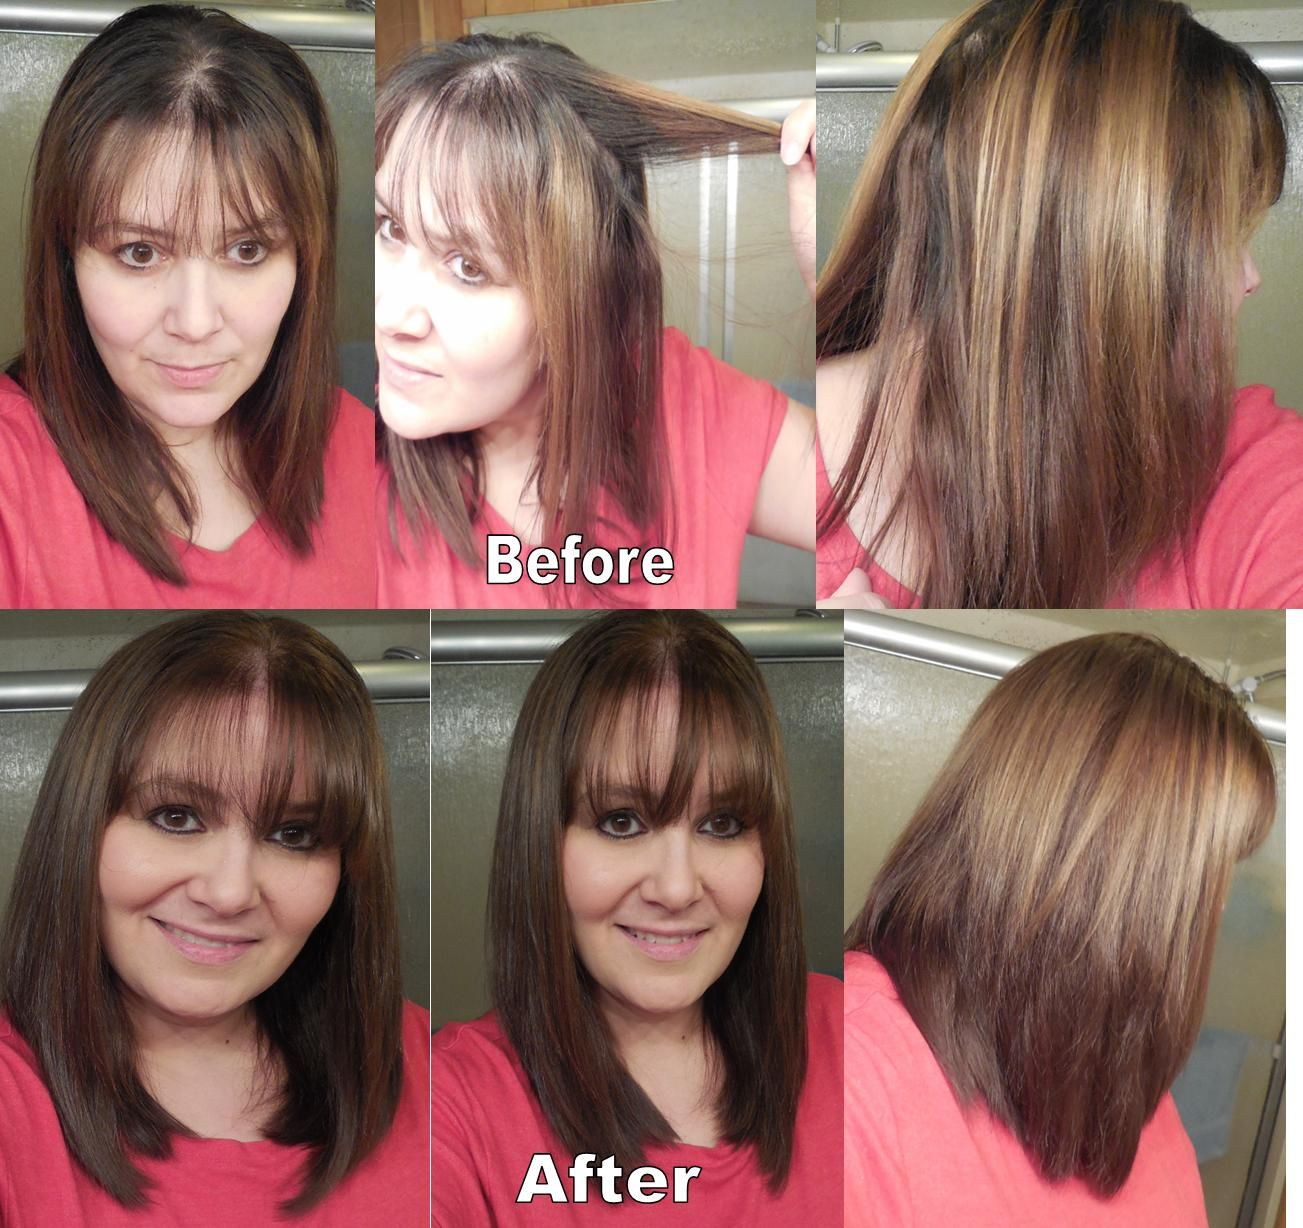 Vidal Sassoon Hair Color Reviews Best Way To Color Your Hair At